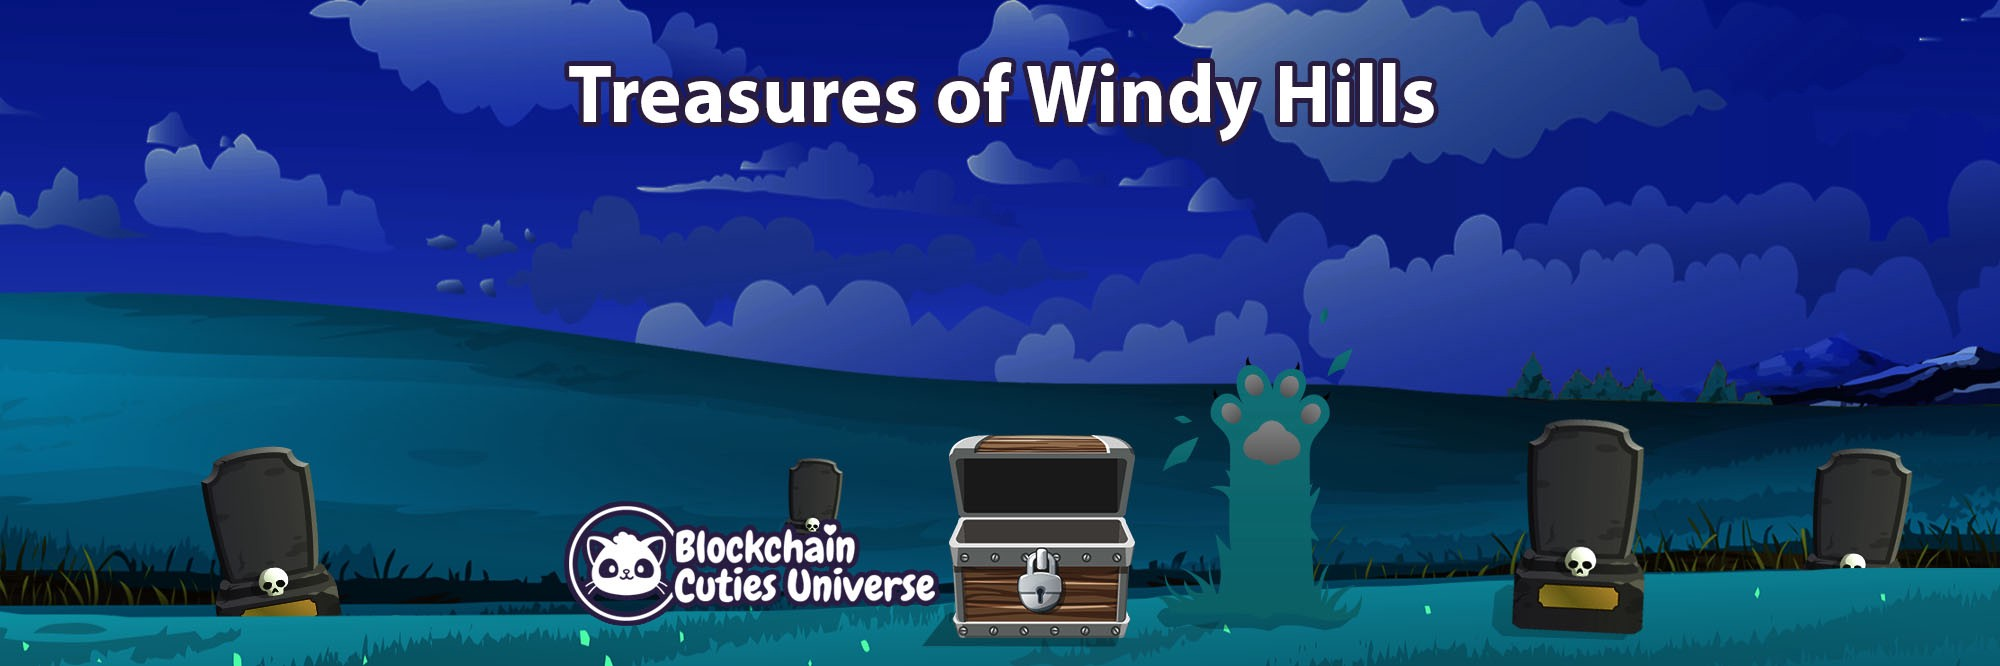 Why Visit Windy Hills Before Halloween?